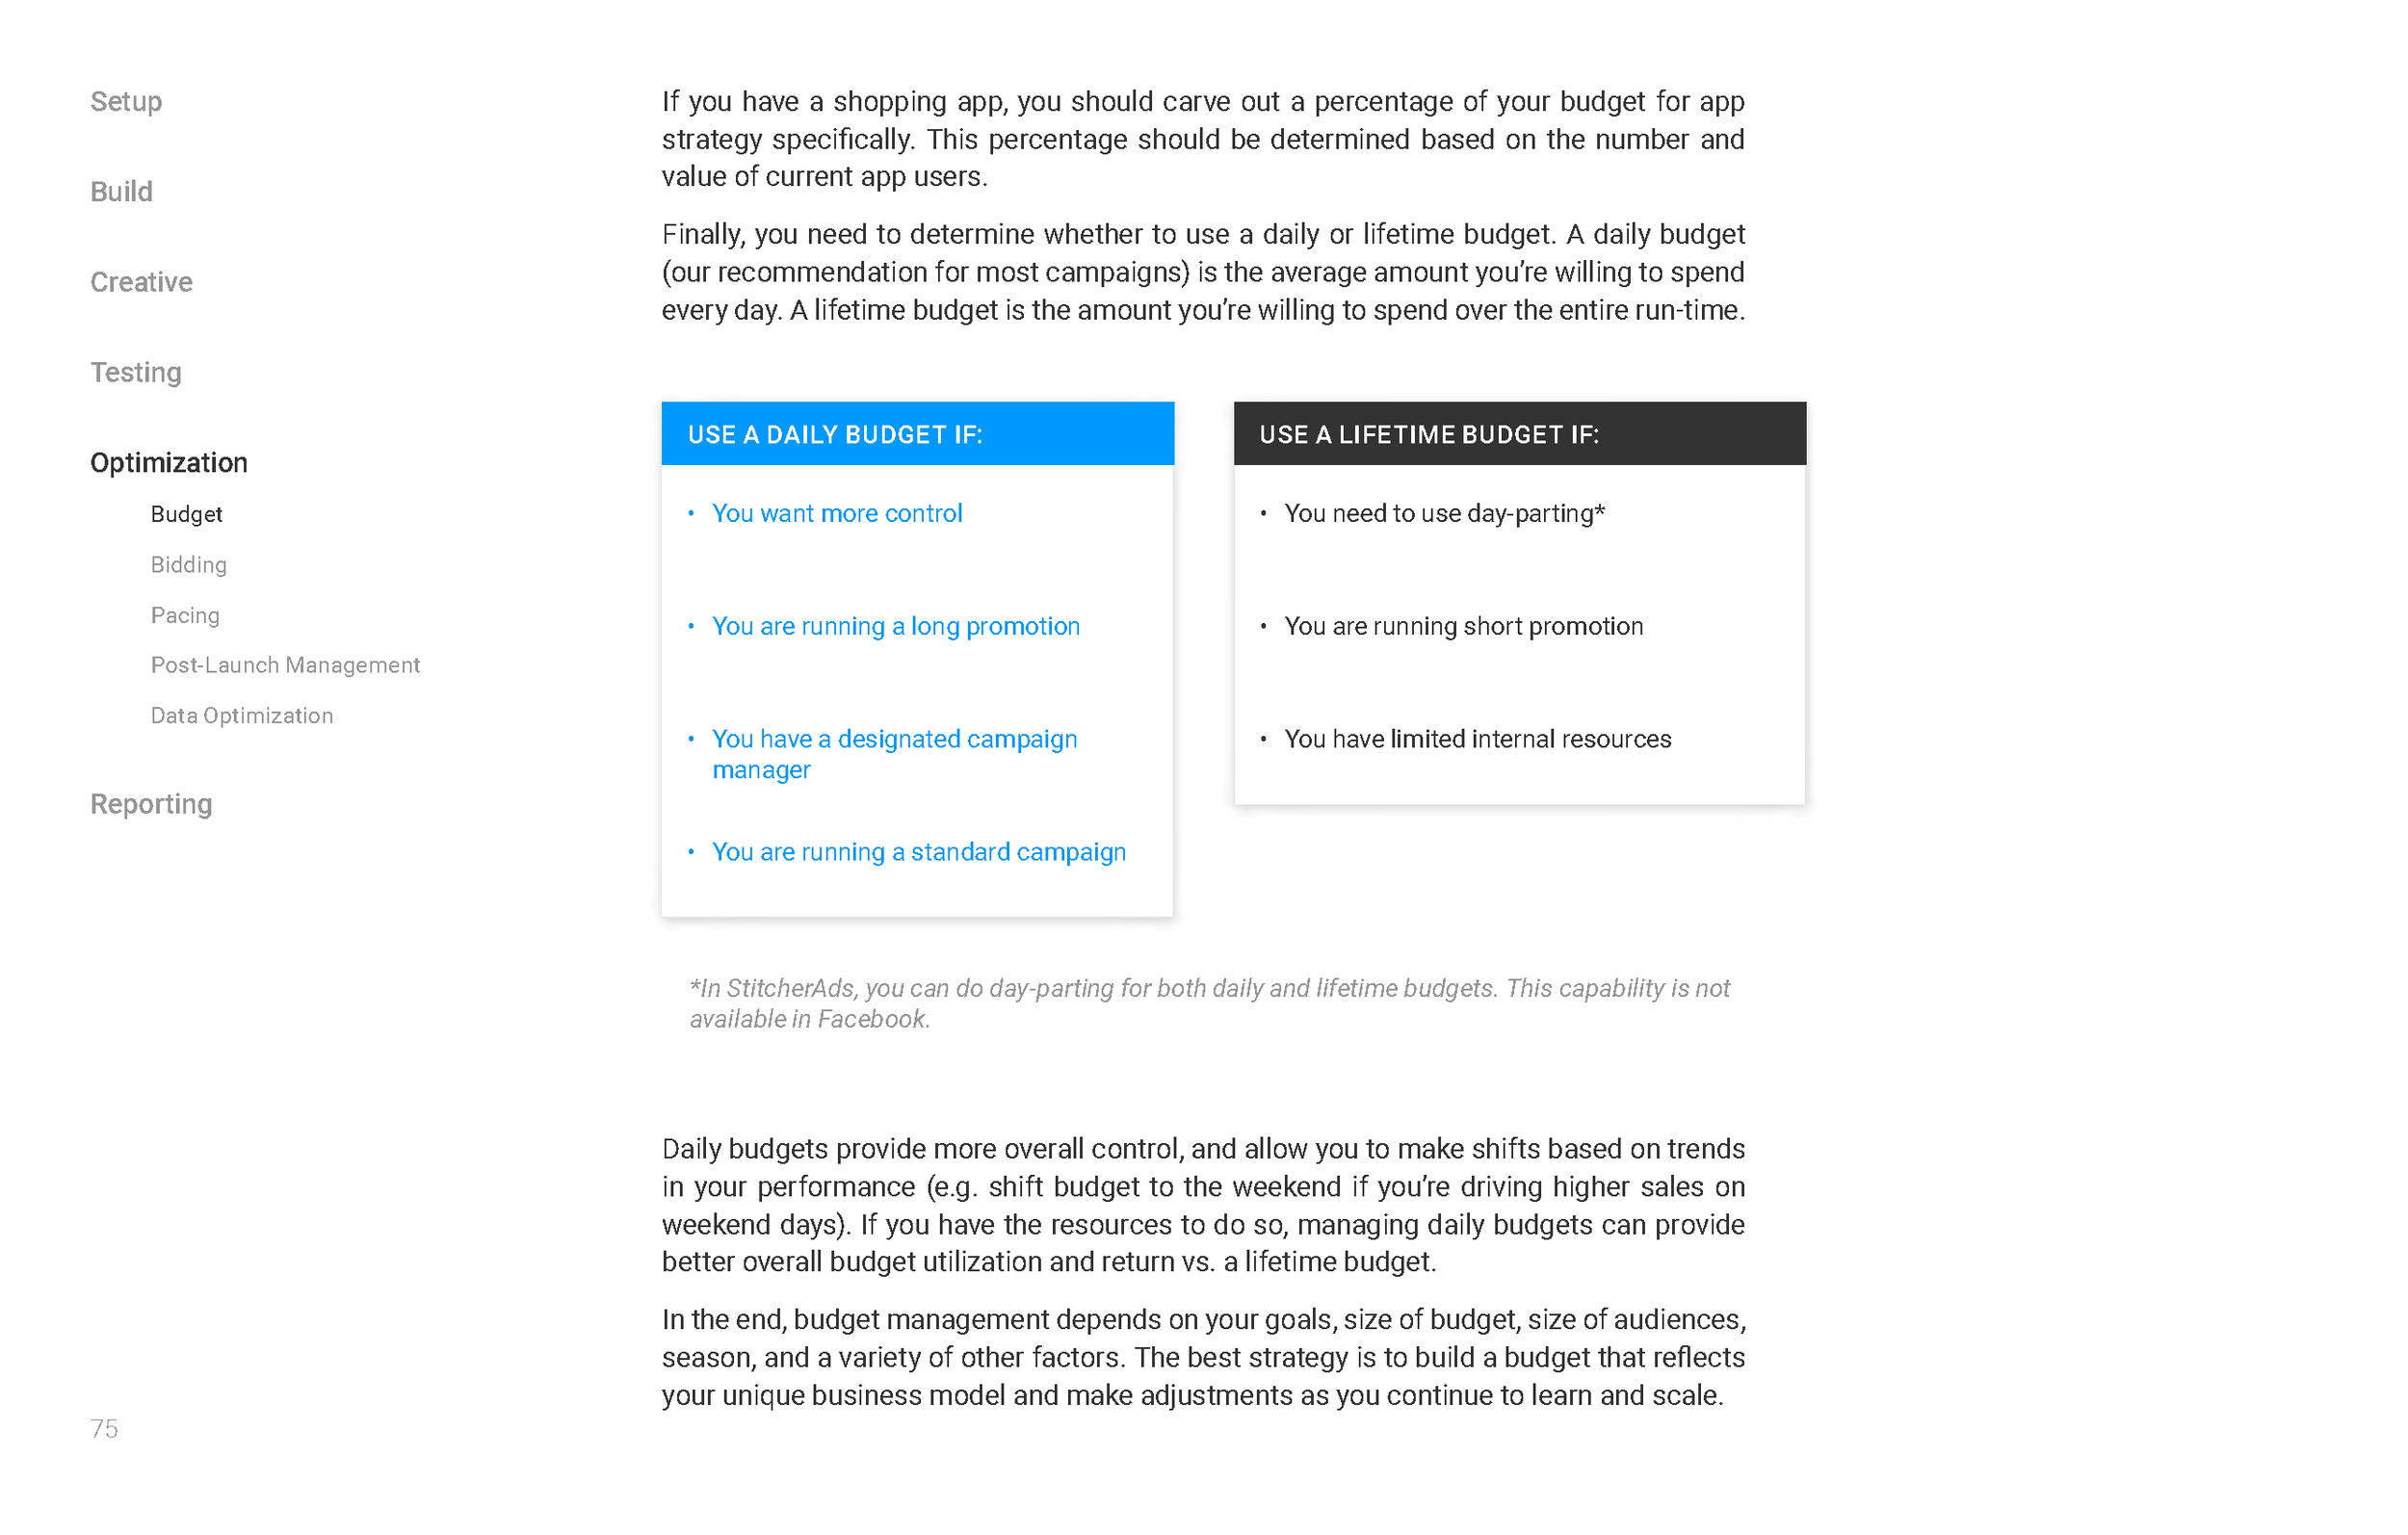 retail playbook _Page_075.png